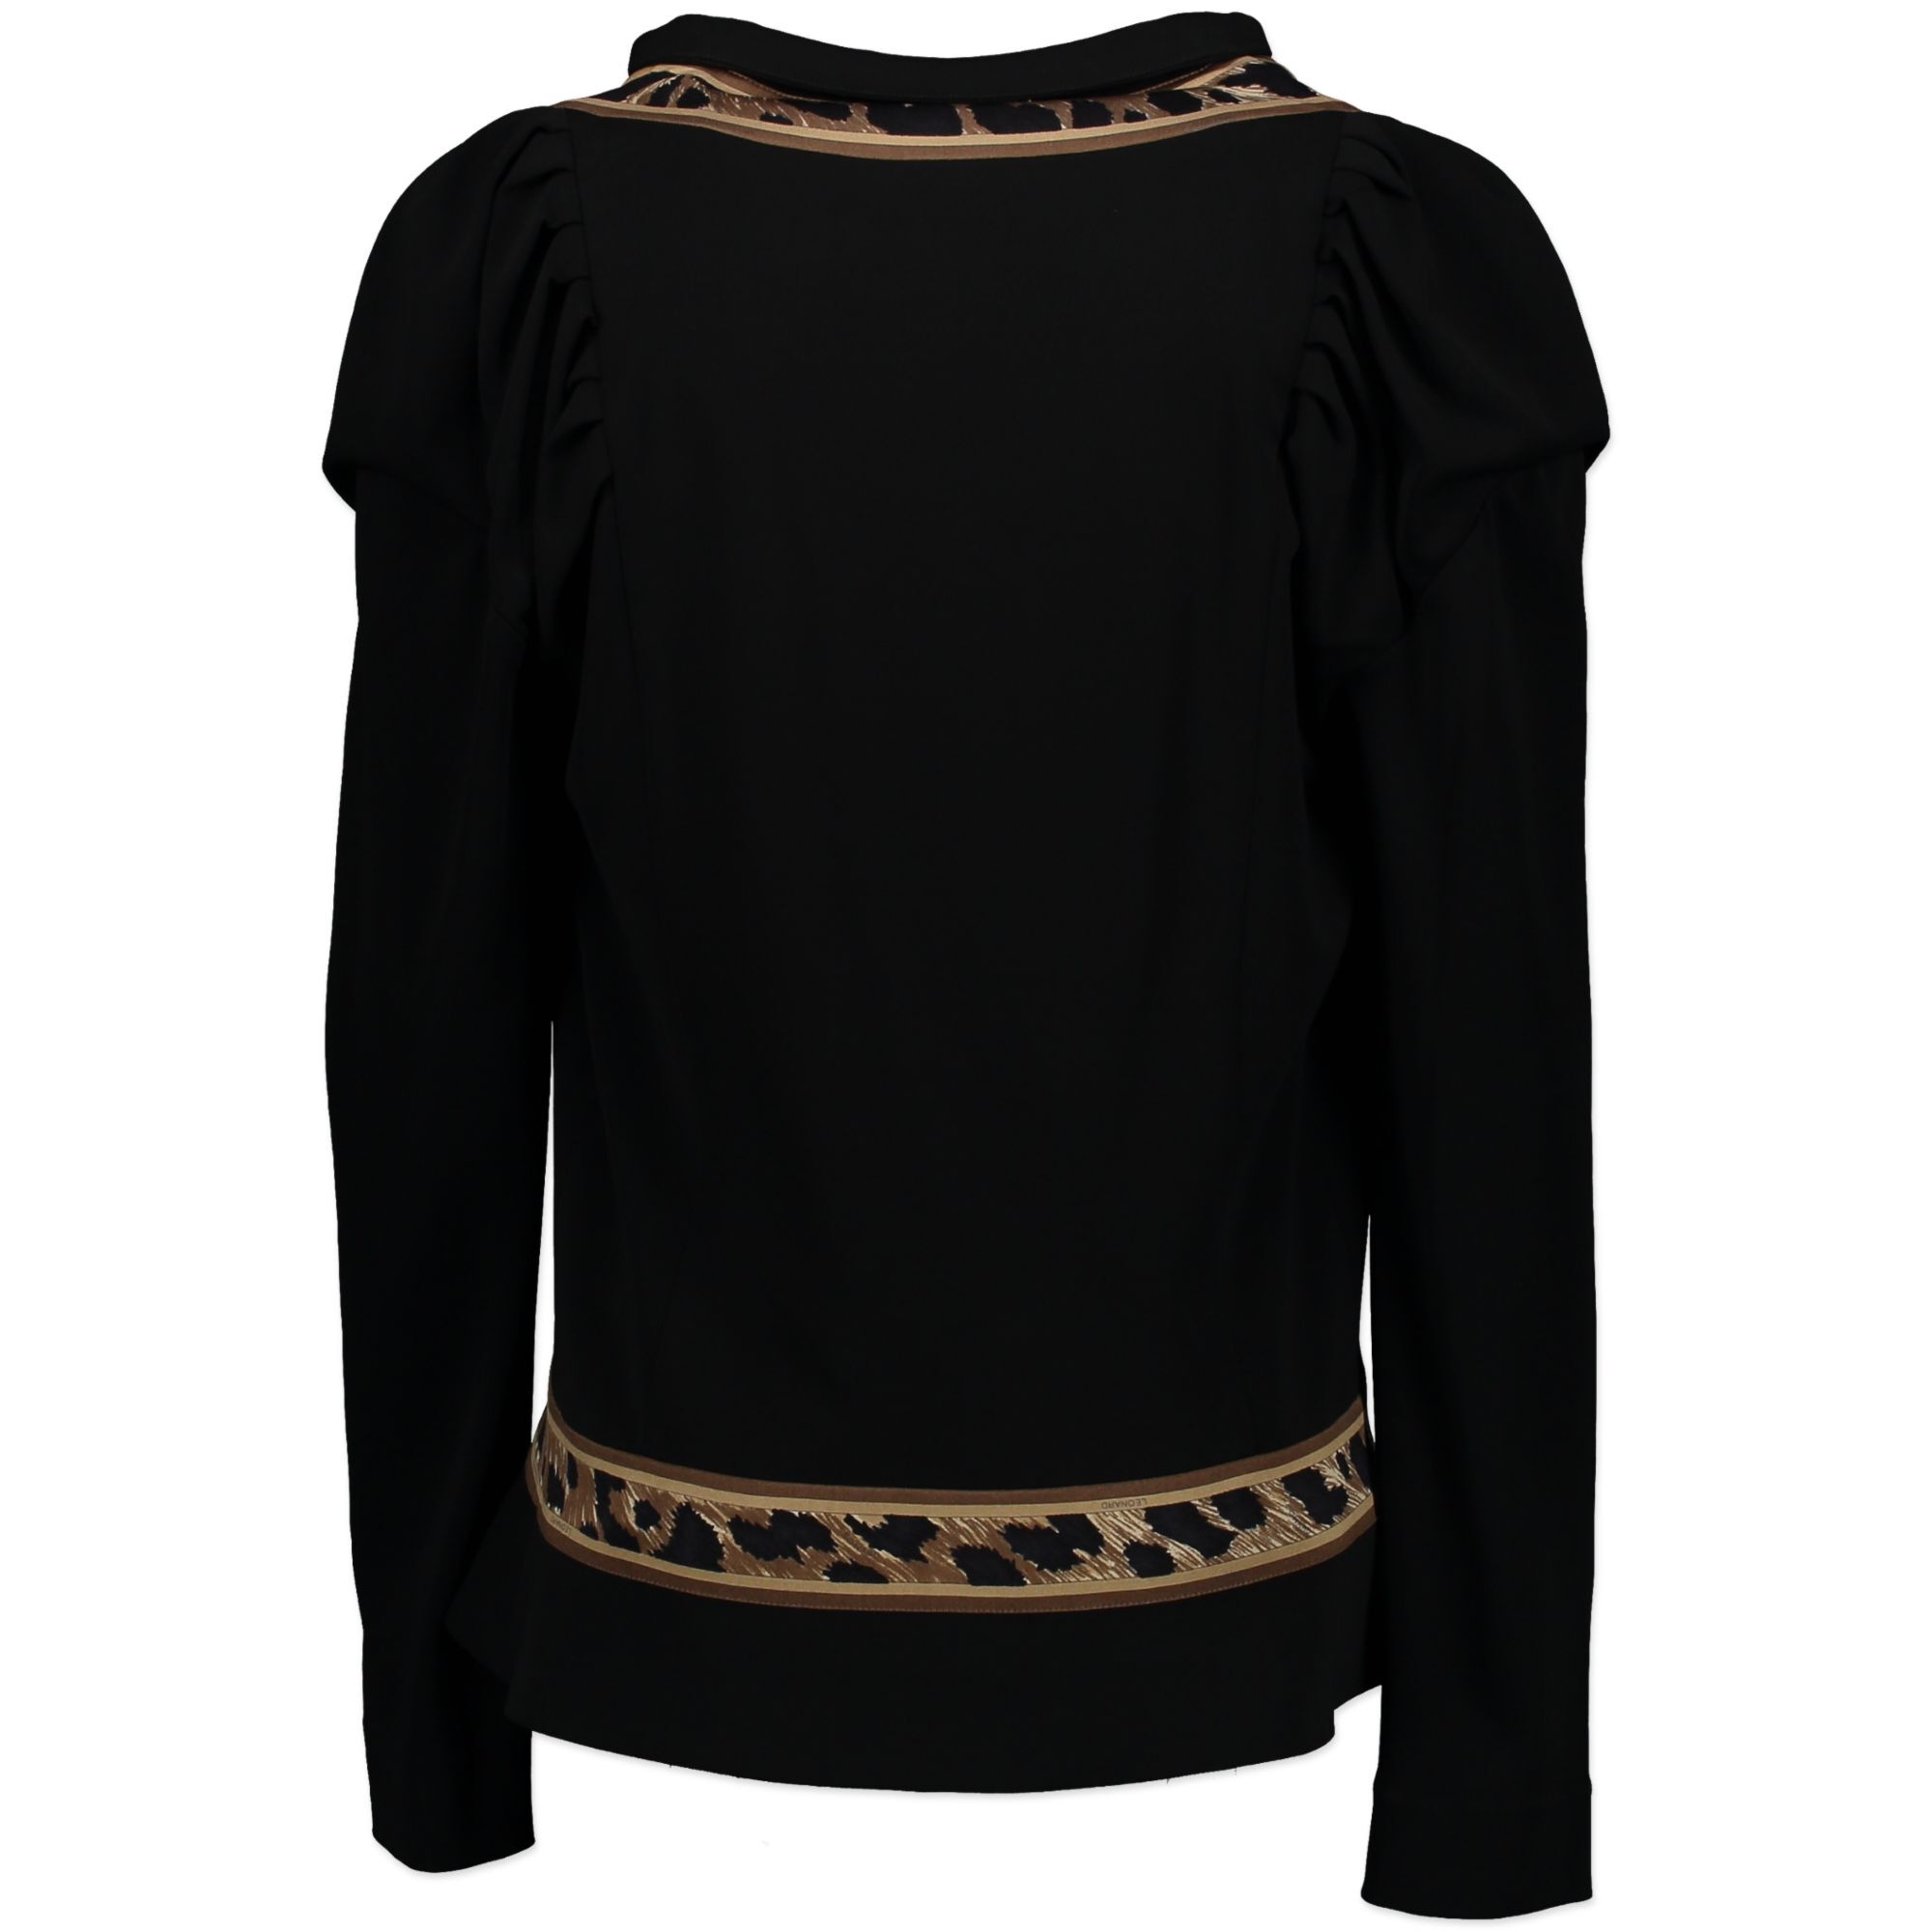 Leonard Matching Top and Blazer Leopard - Size Italian 42. Buy authentic Leonard clothes online. Safe payment.